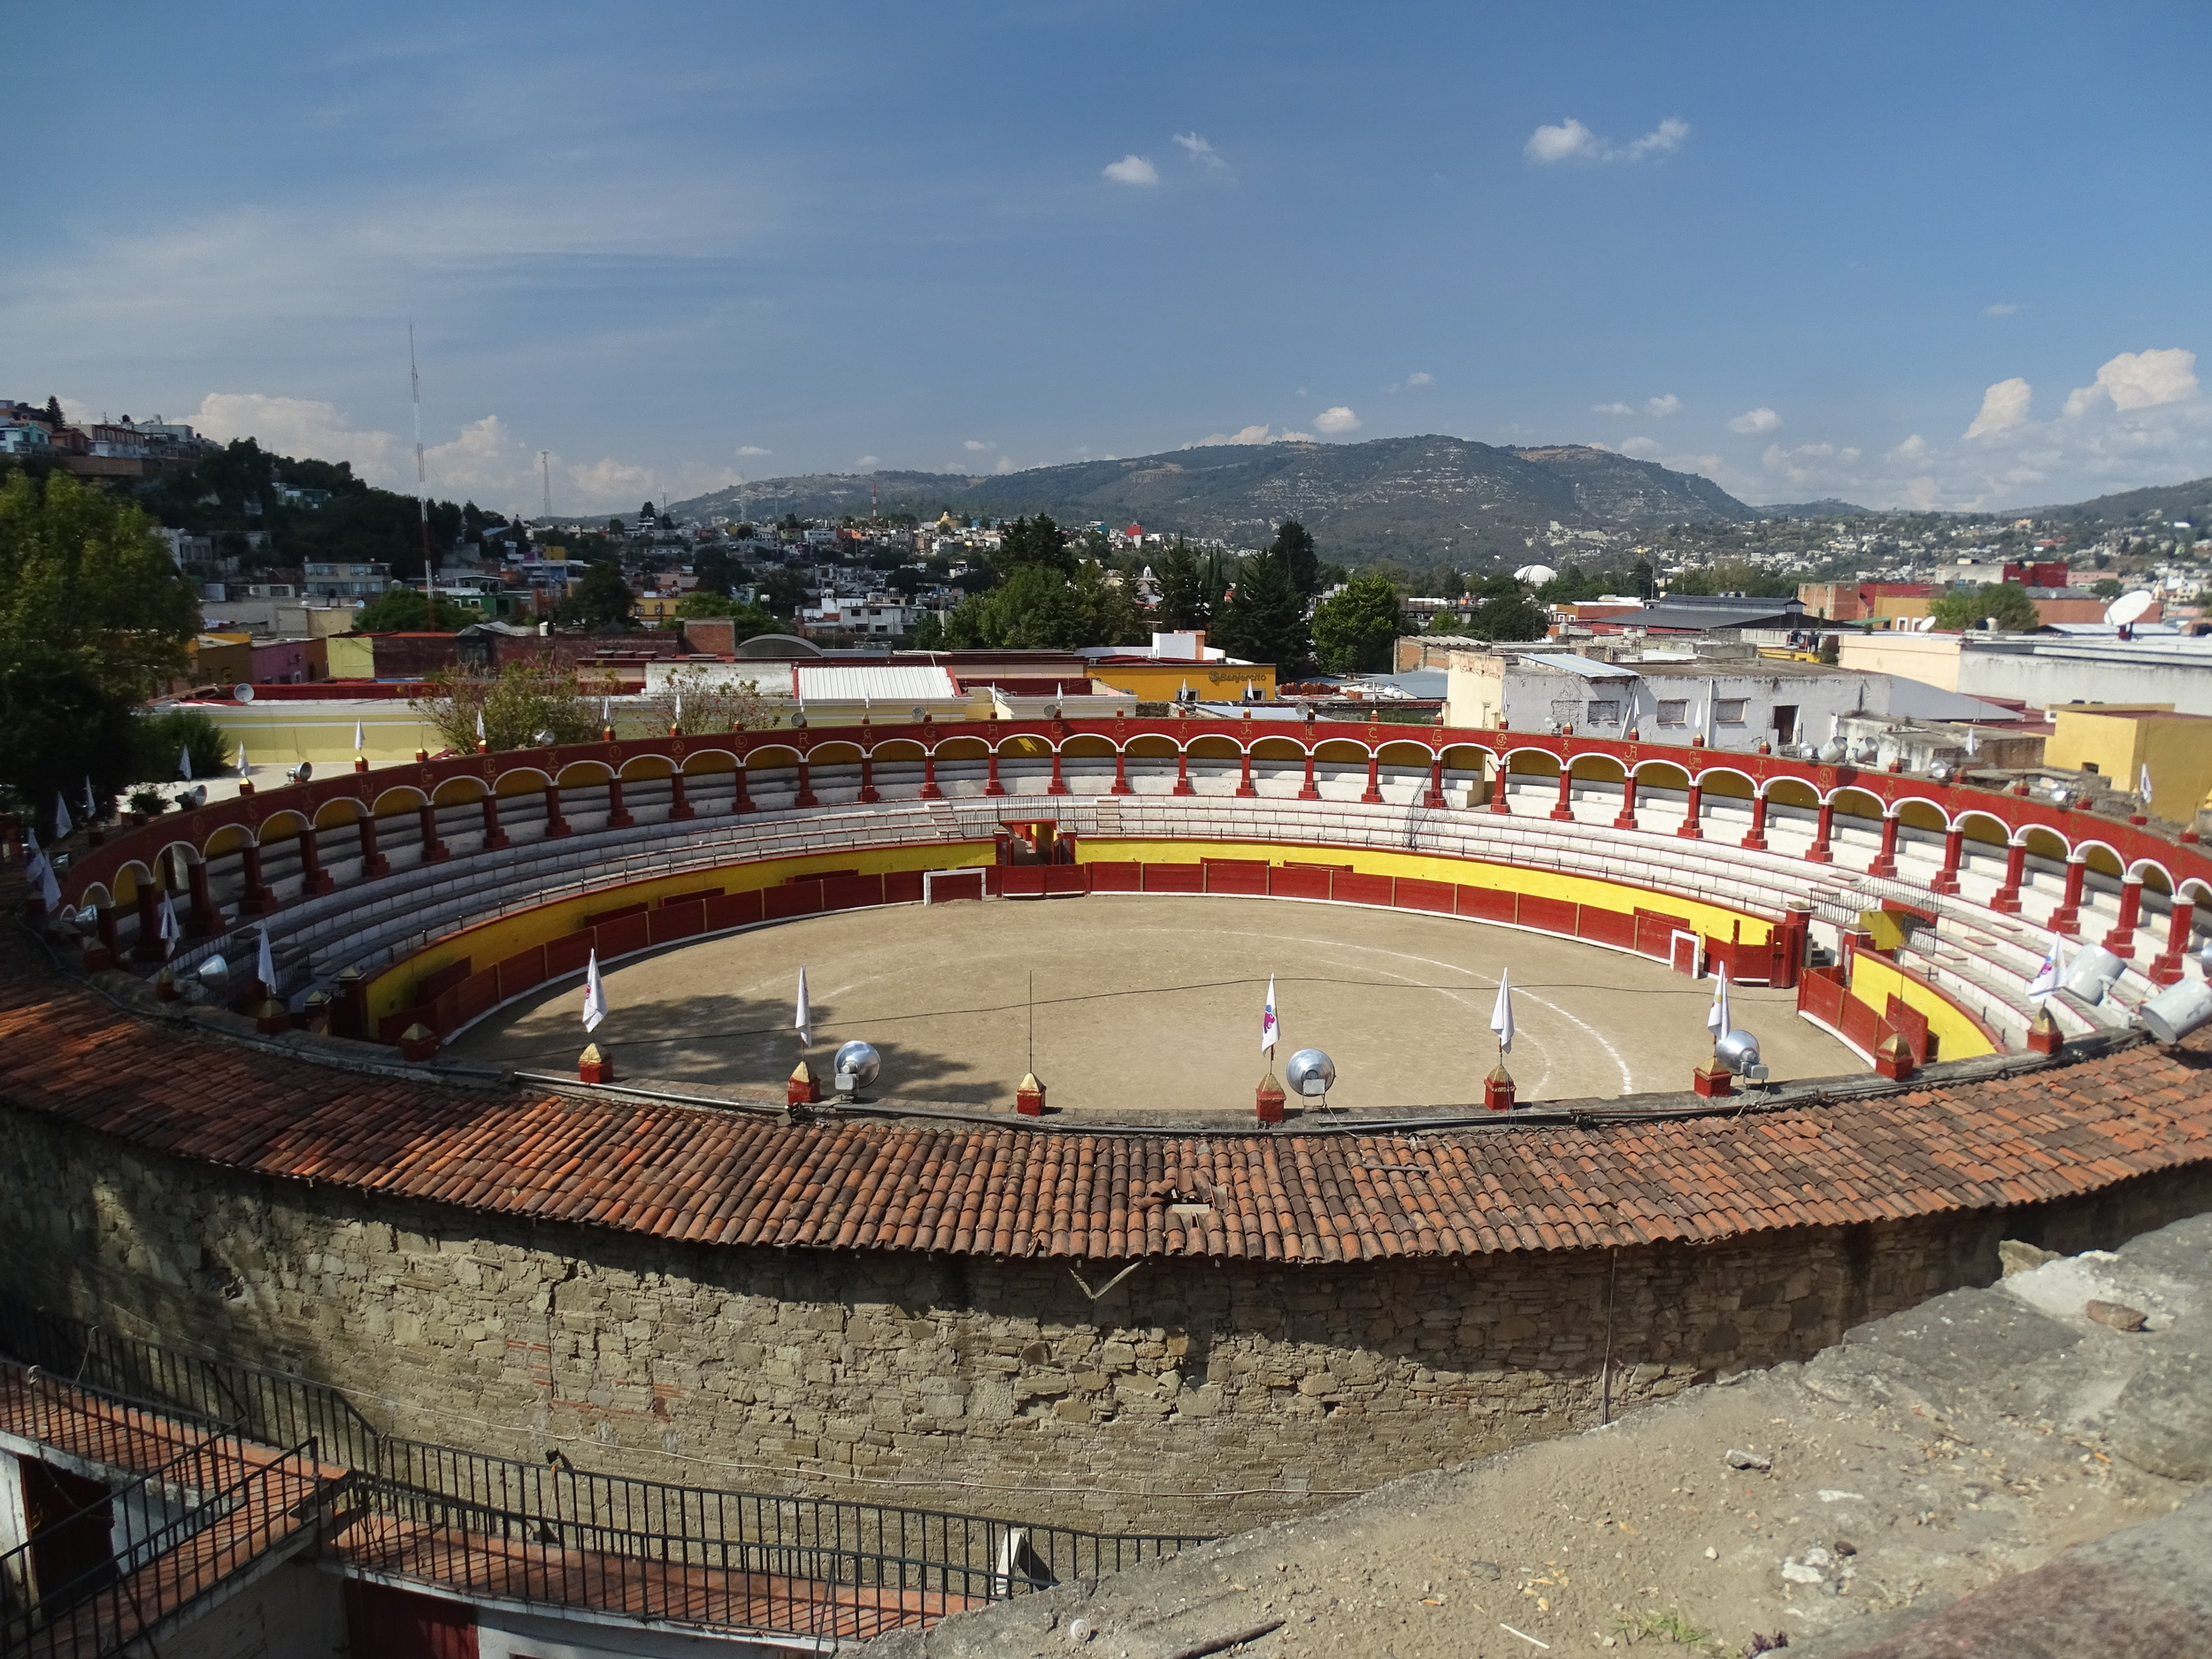 Oldest active bullring in Mexico!